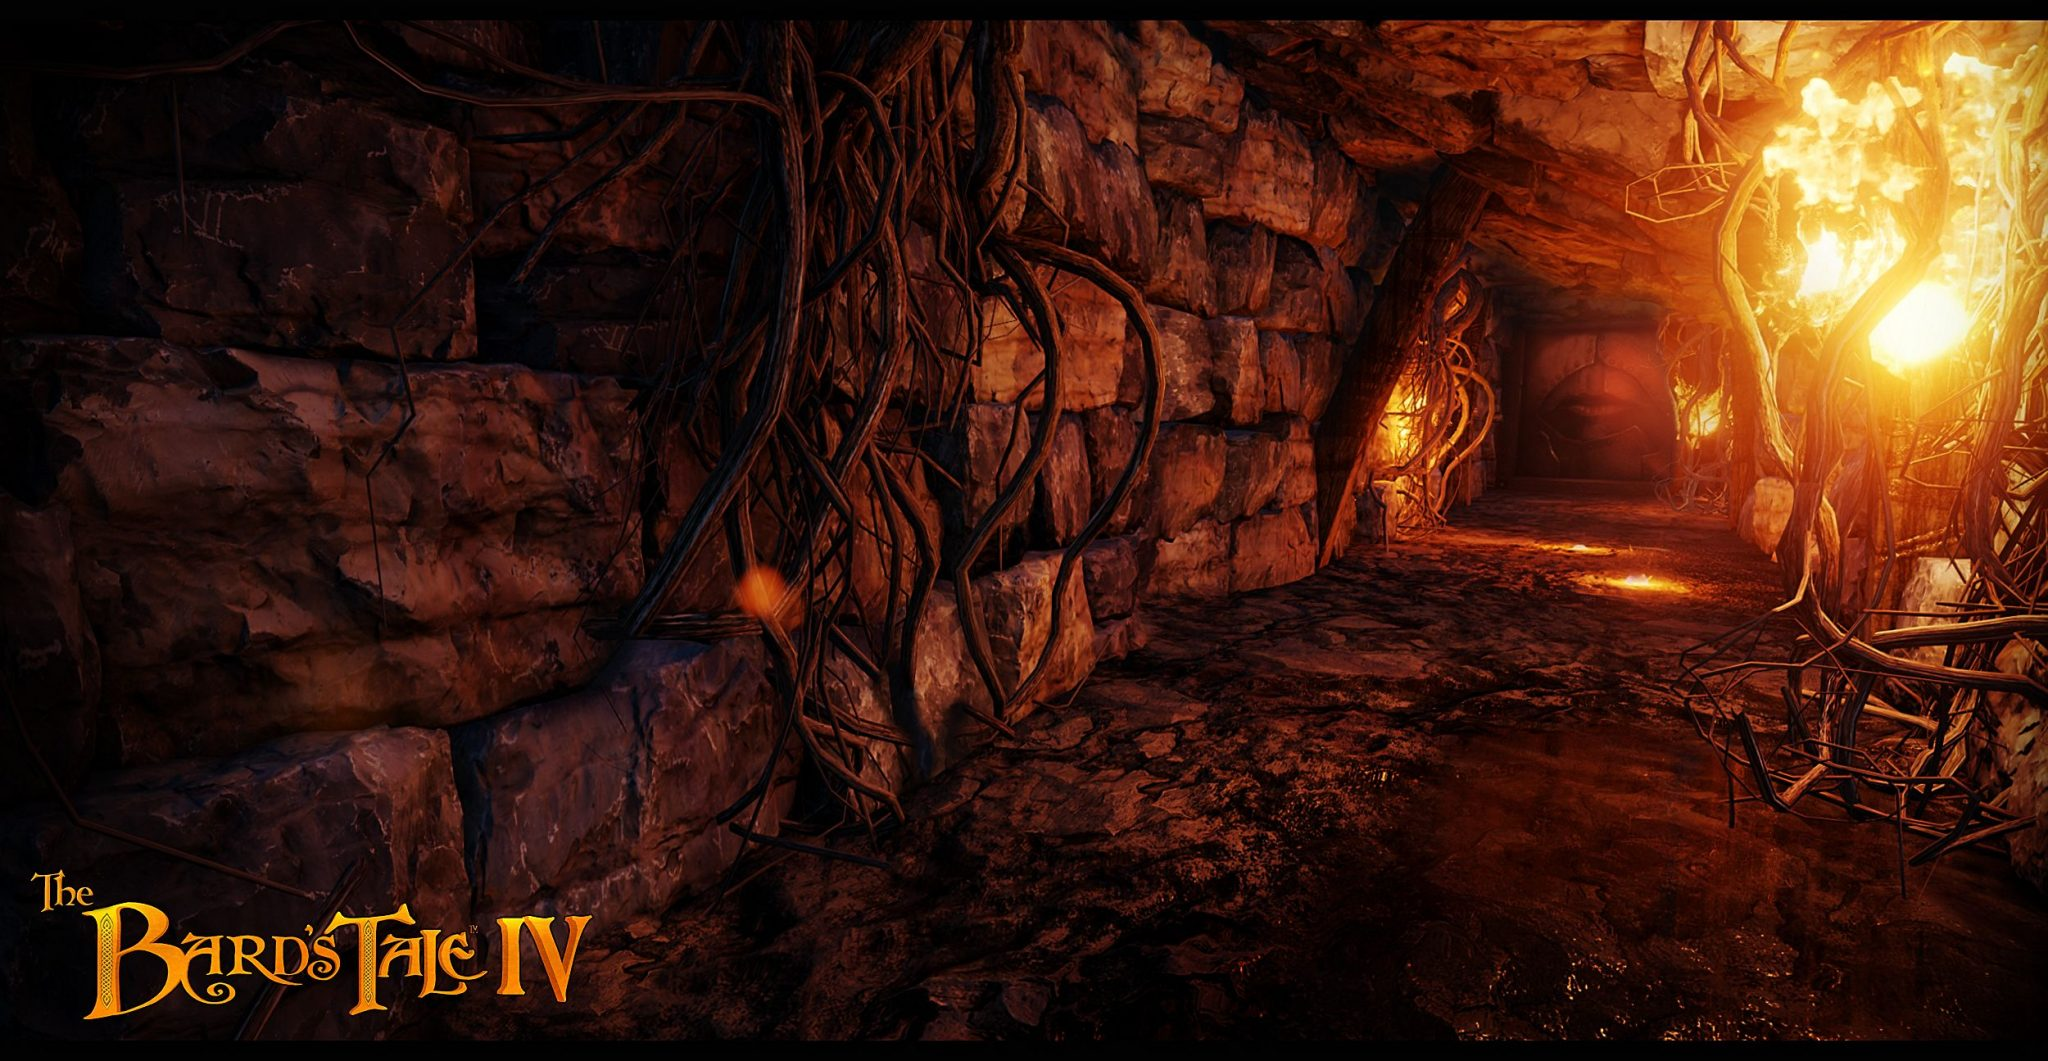 Back The Bard's Tale IV, get a free game